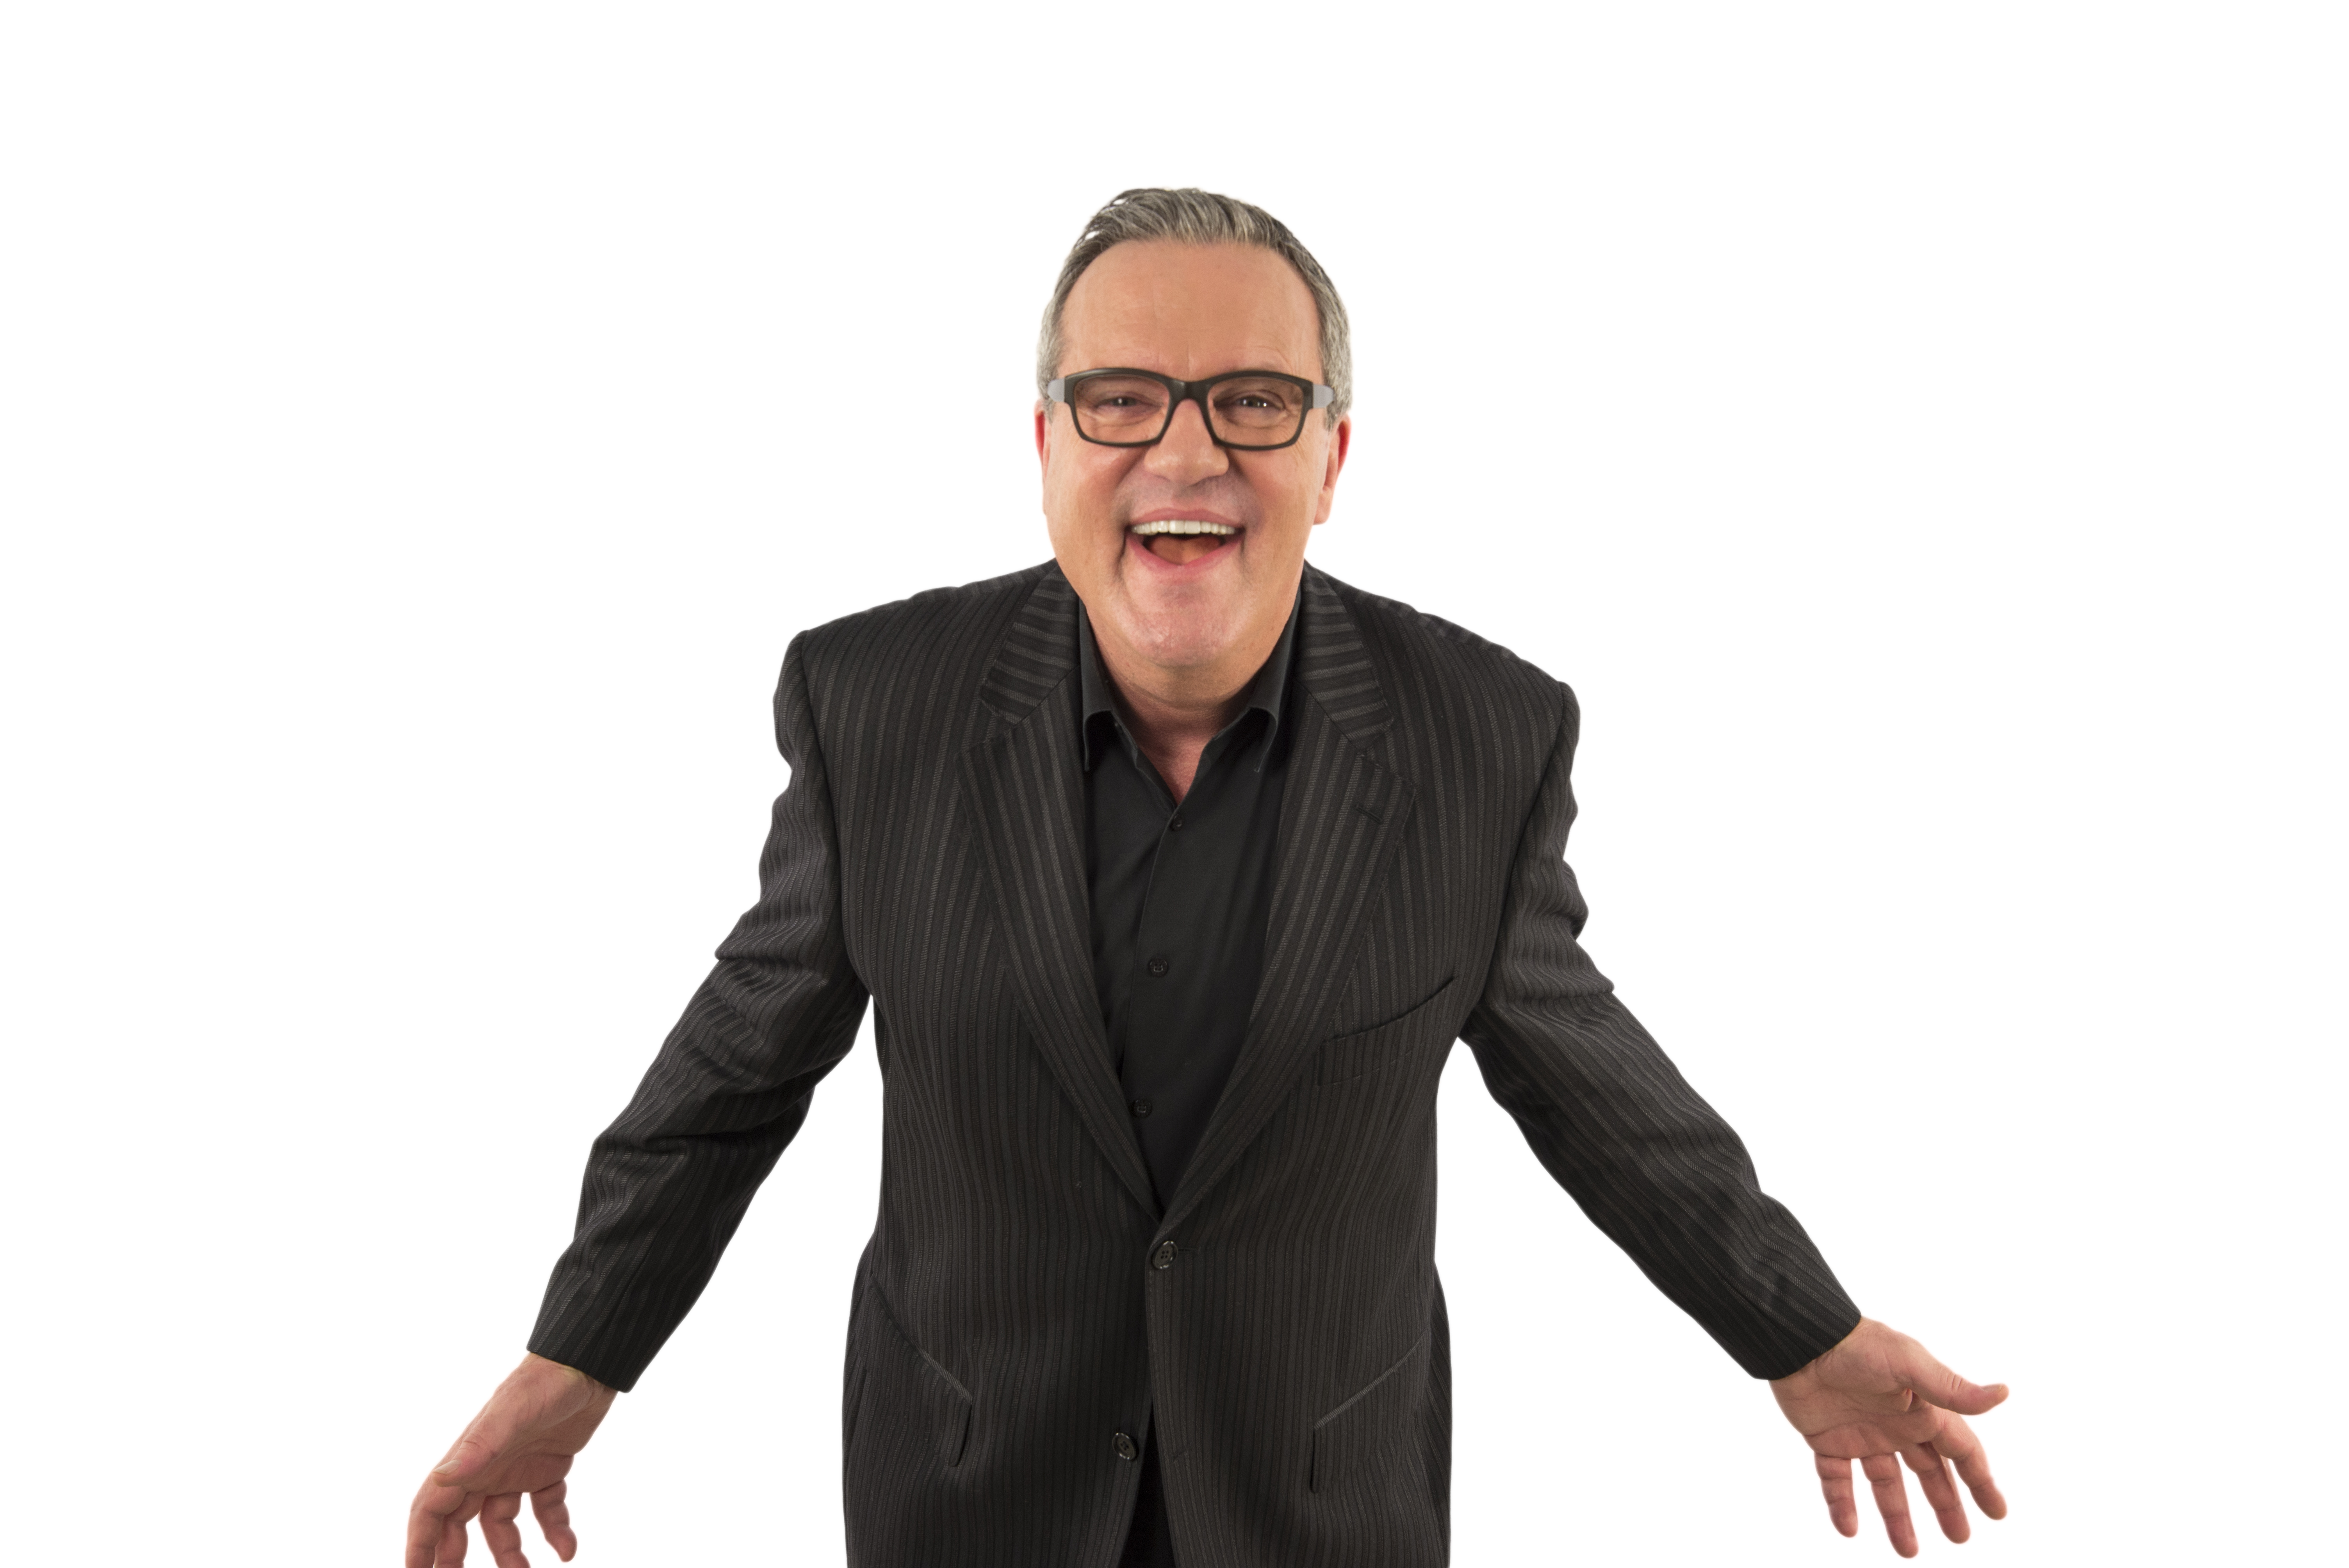 Mark Lowry as featured on the Jesus Calling podcast